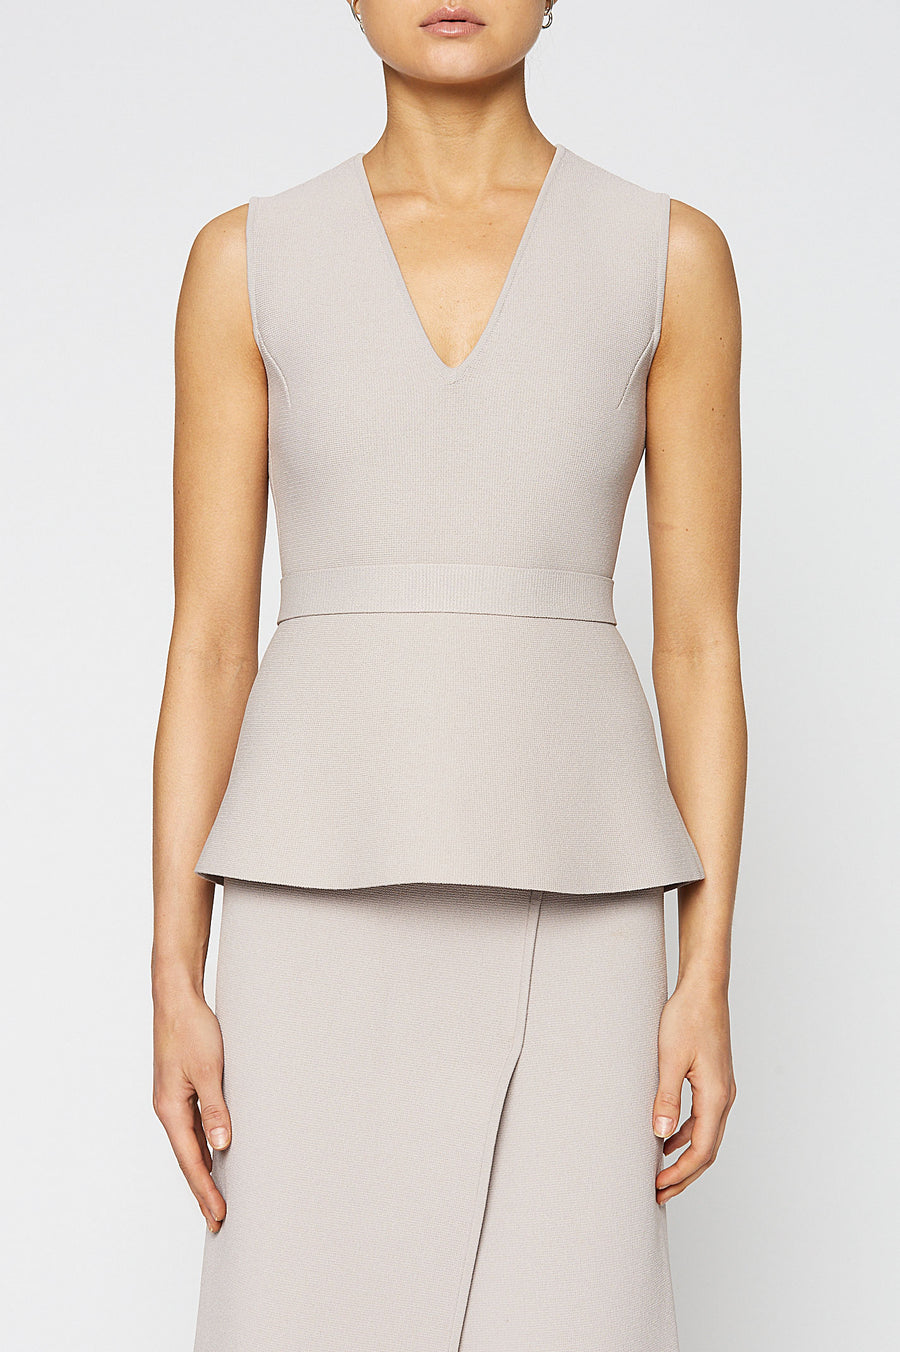 CREPE KNIT V NECK PEPLUM TOP, OYSTER color